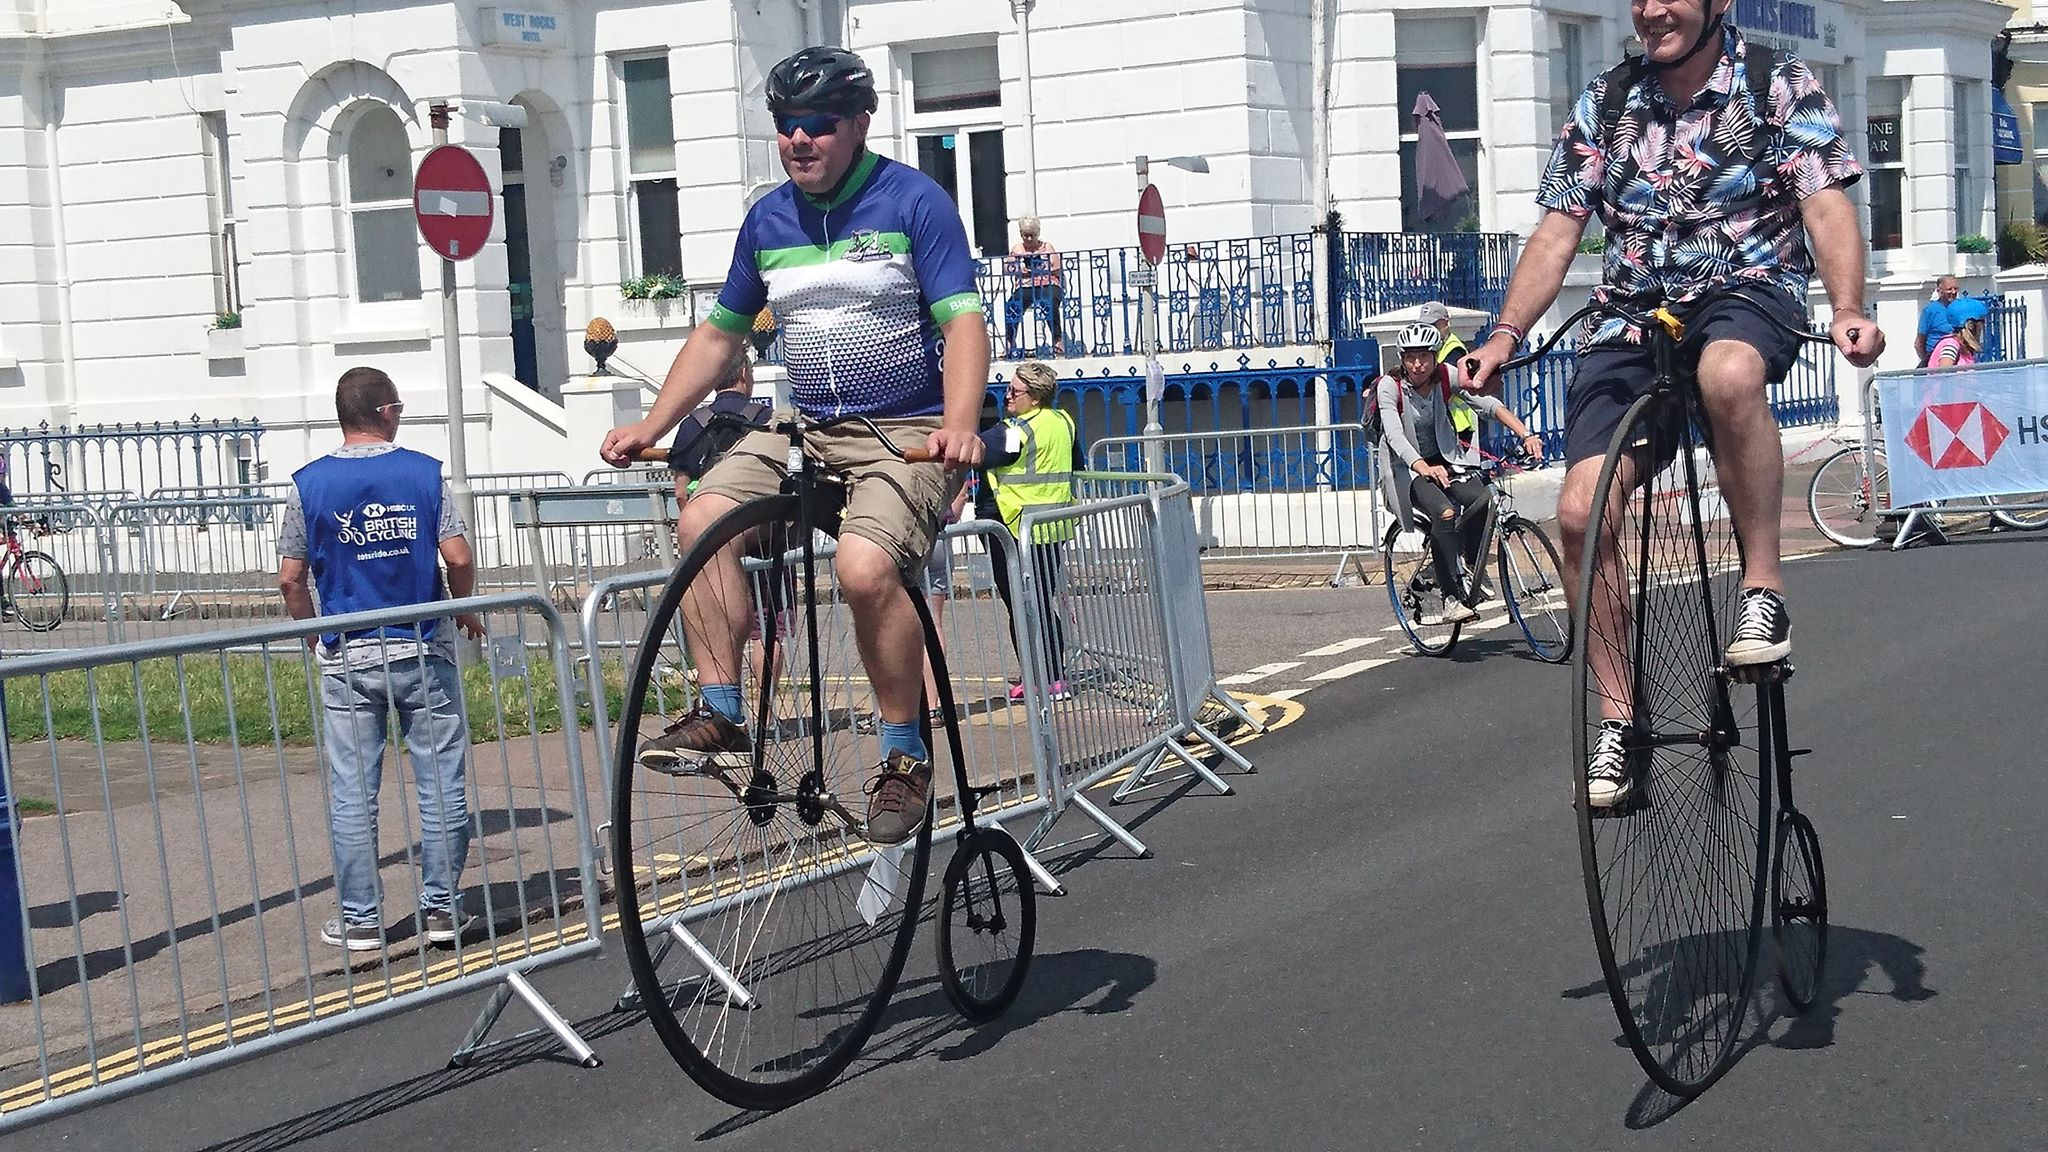 Matt riding his penny-farthing at the Eastbourne Cycling Festival